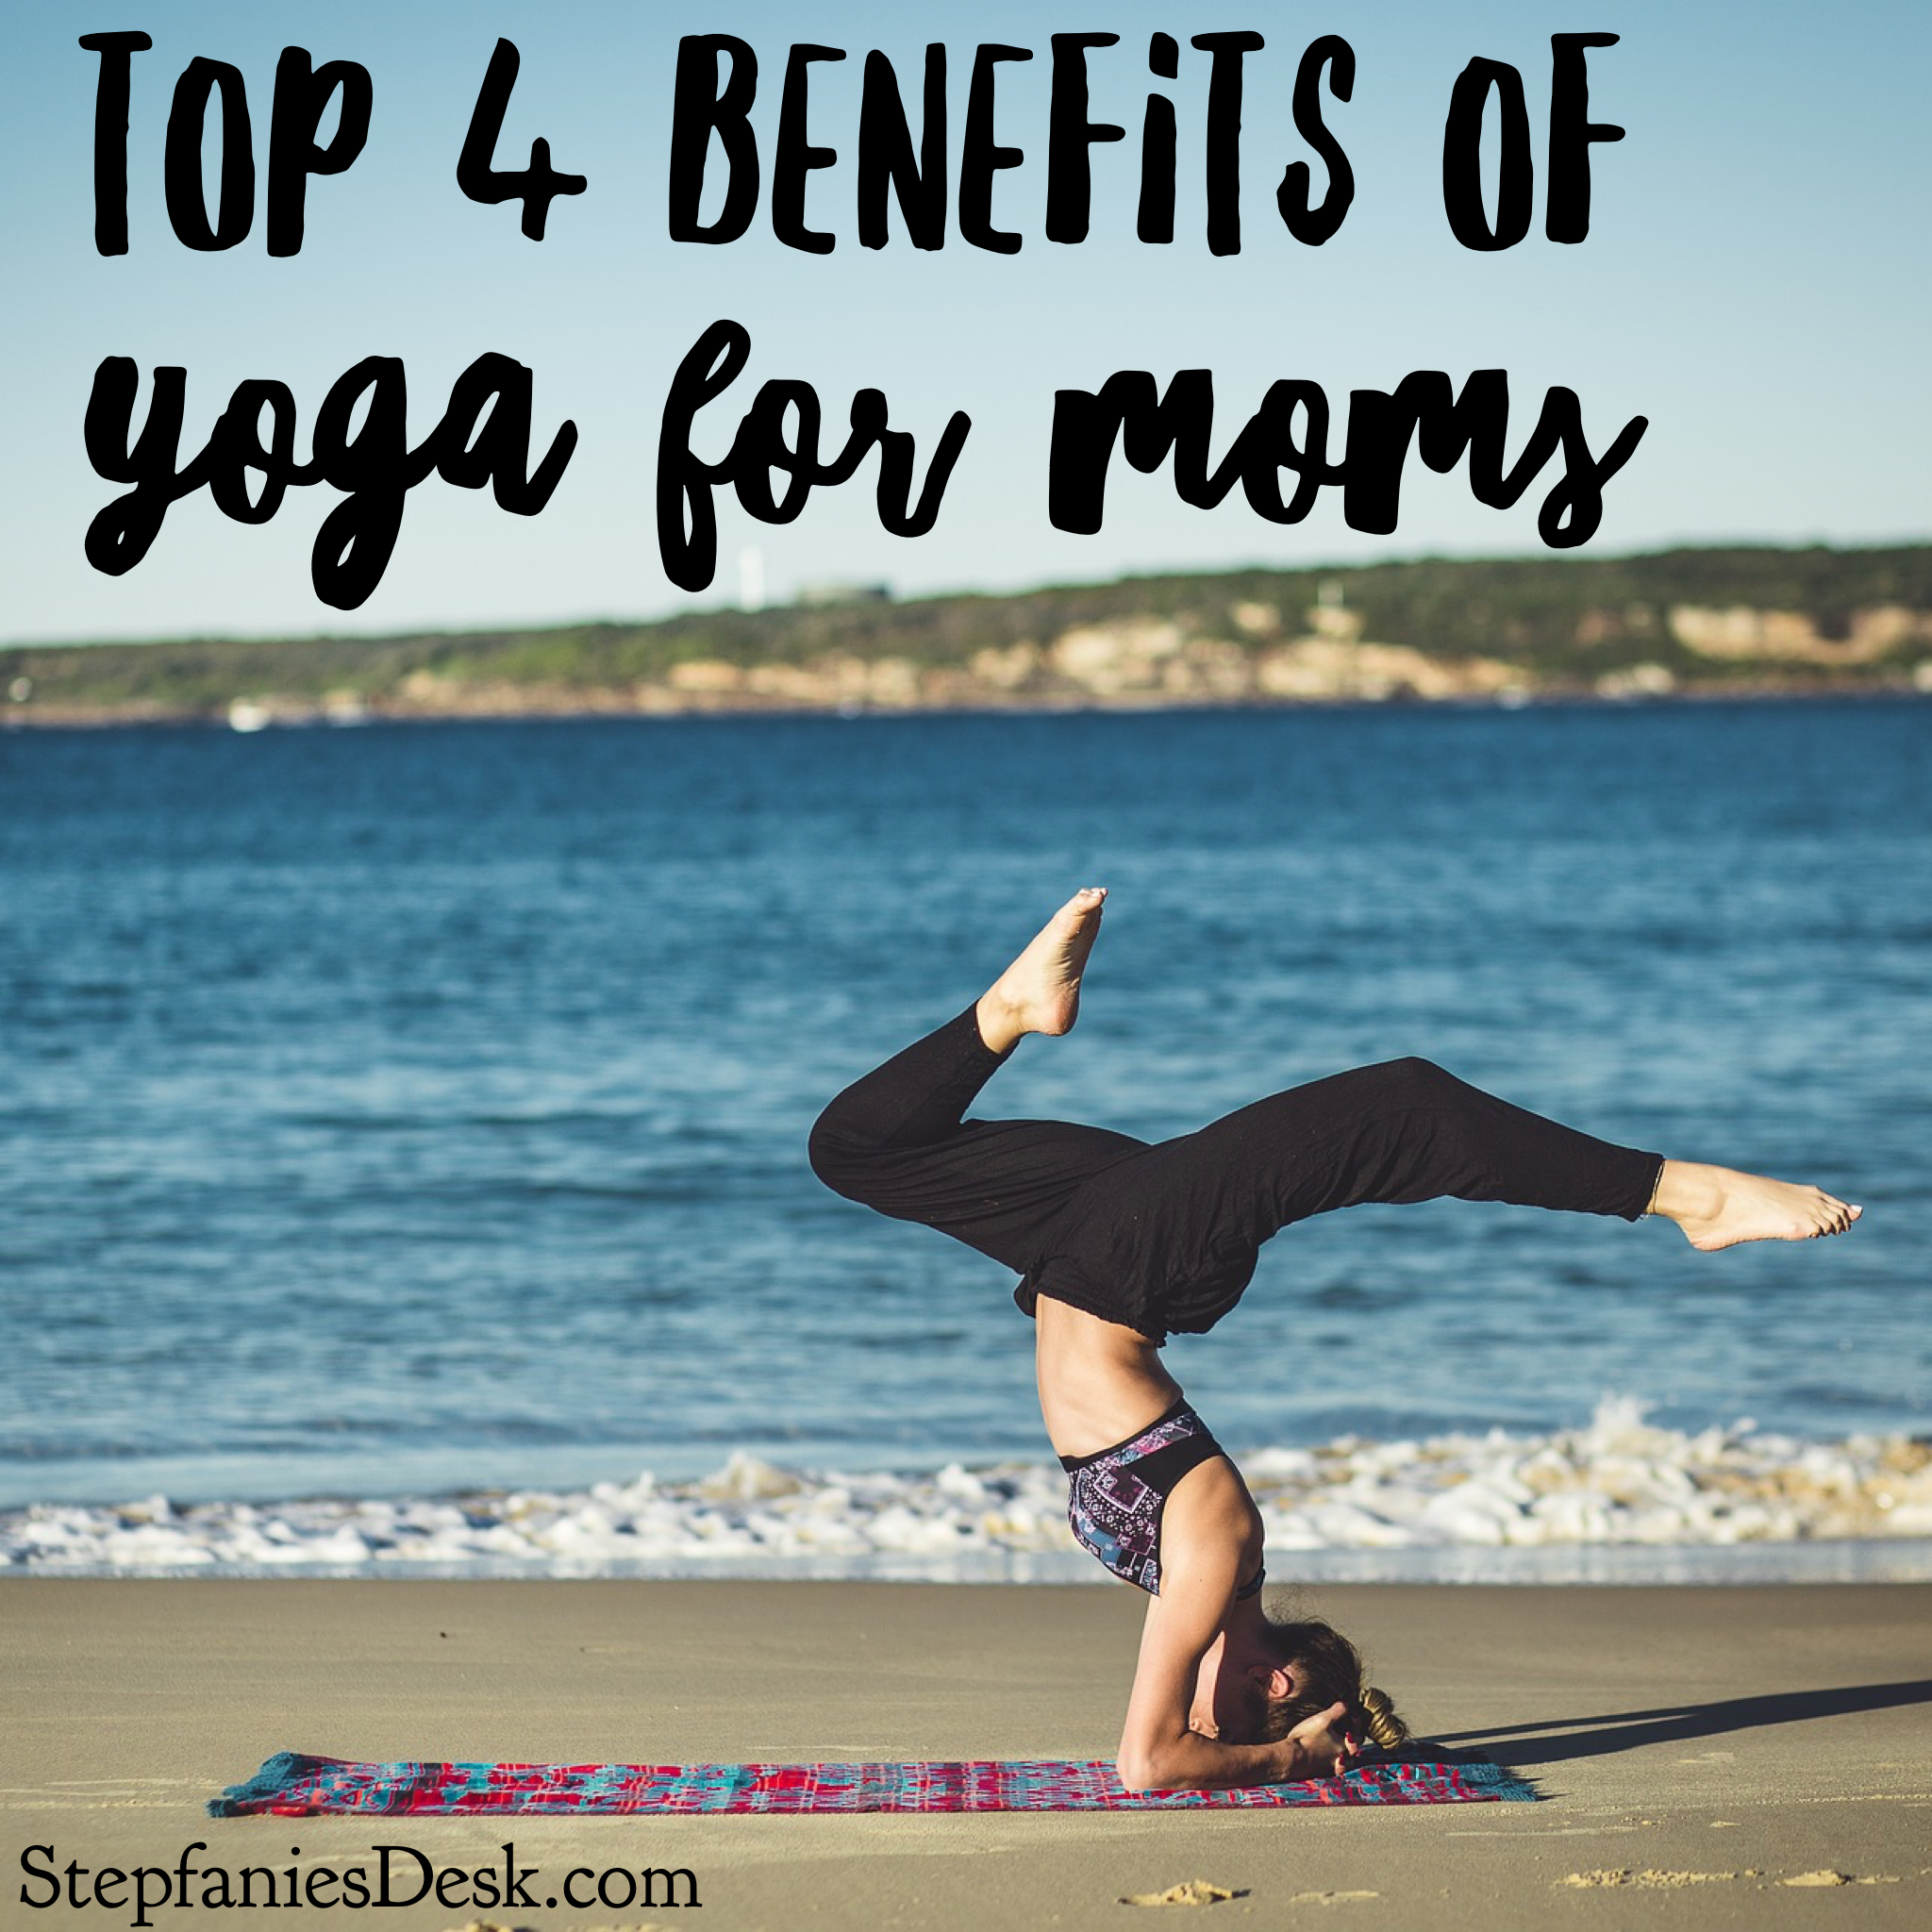 Top 4 Benefits of Yoga for Moms